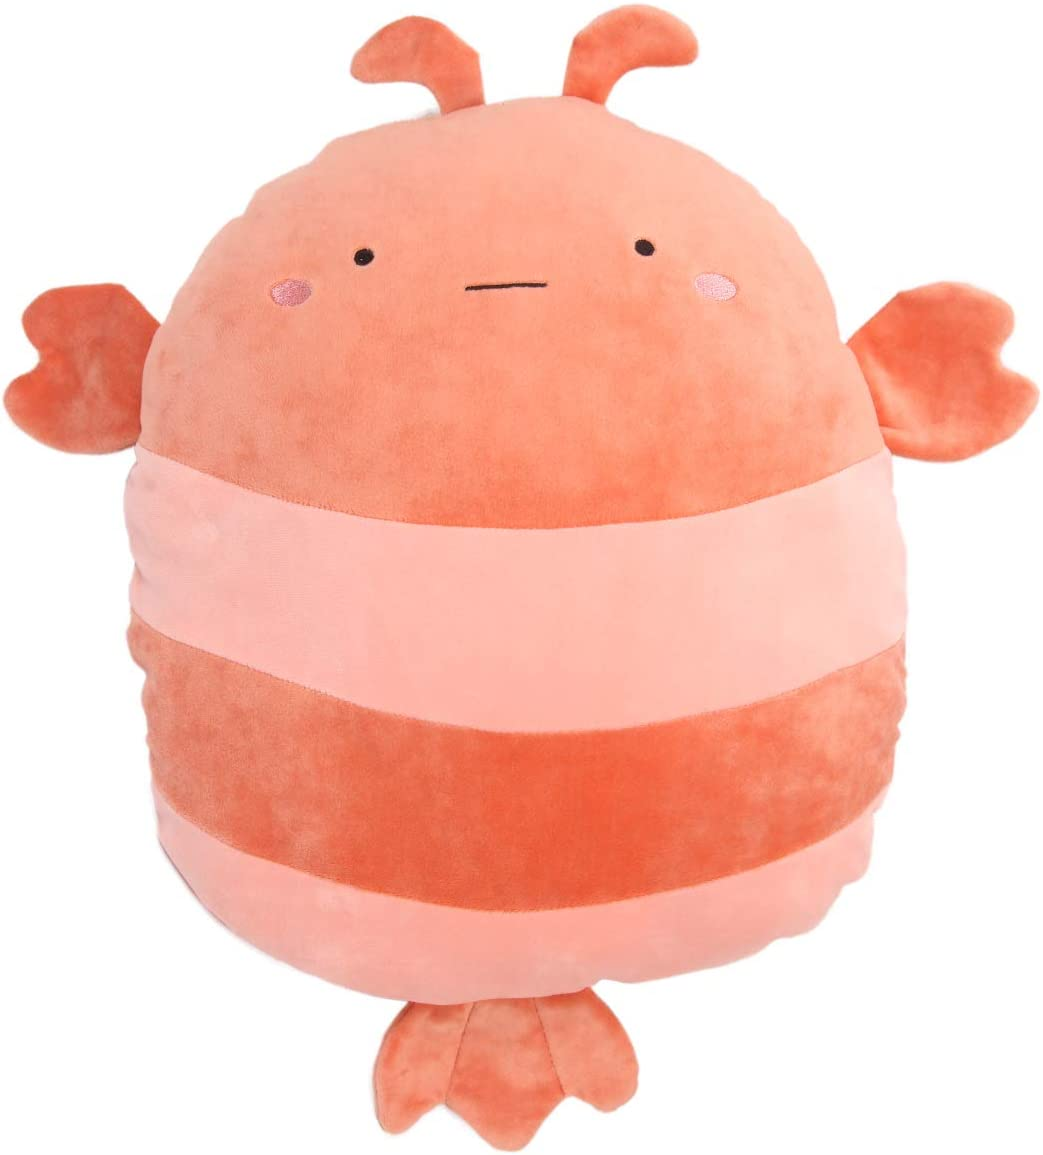 Soft Lobster Plush Hugging Pillow Cute Stuffed Animal Toy Kids Gifts for Birthday, Valentine, Christmas